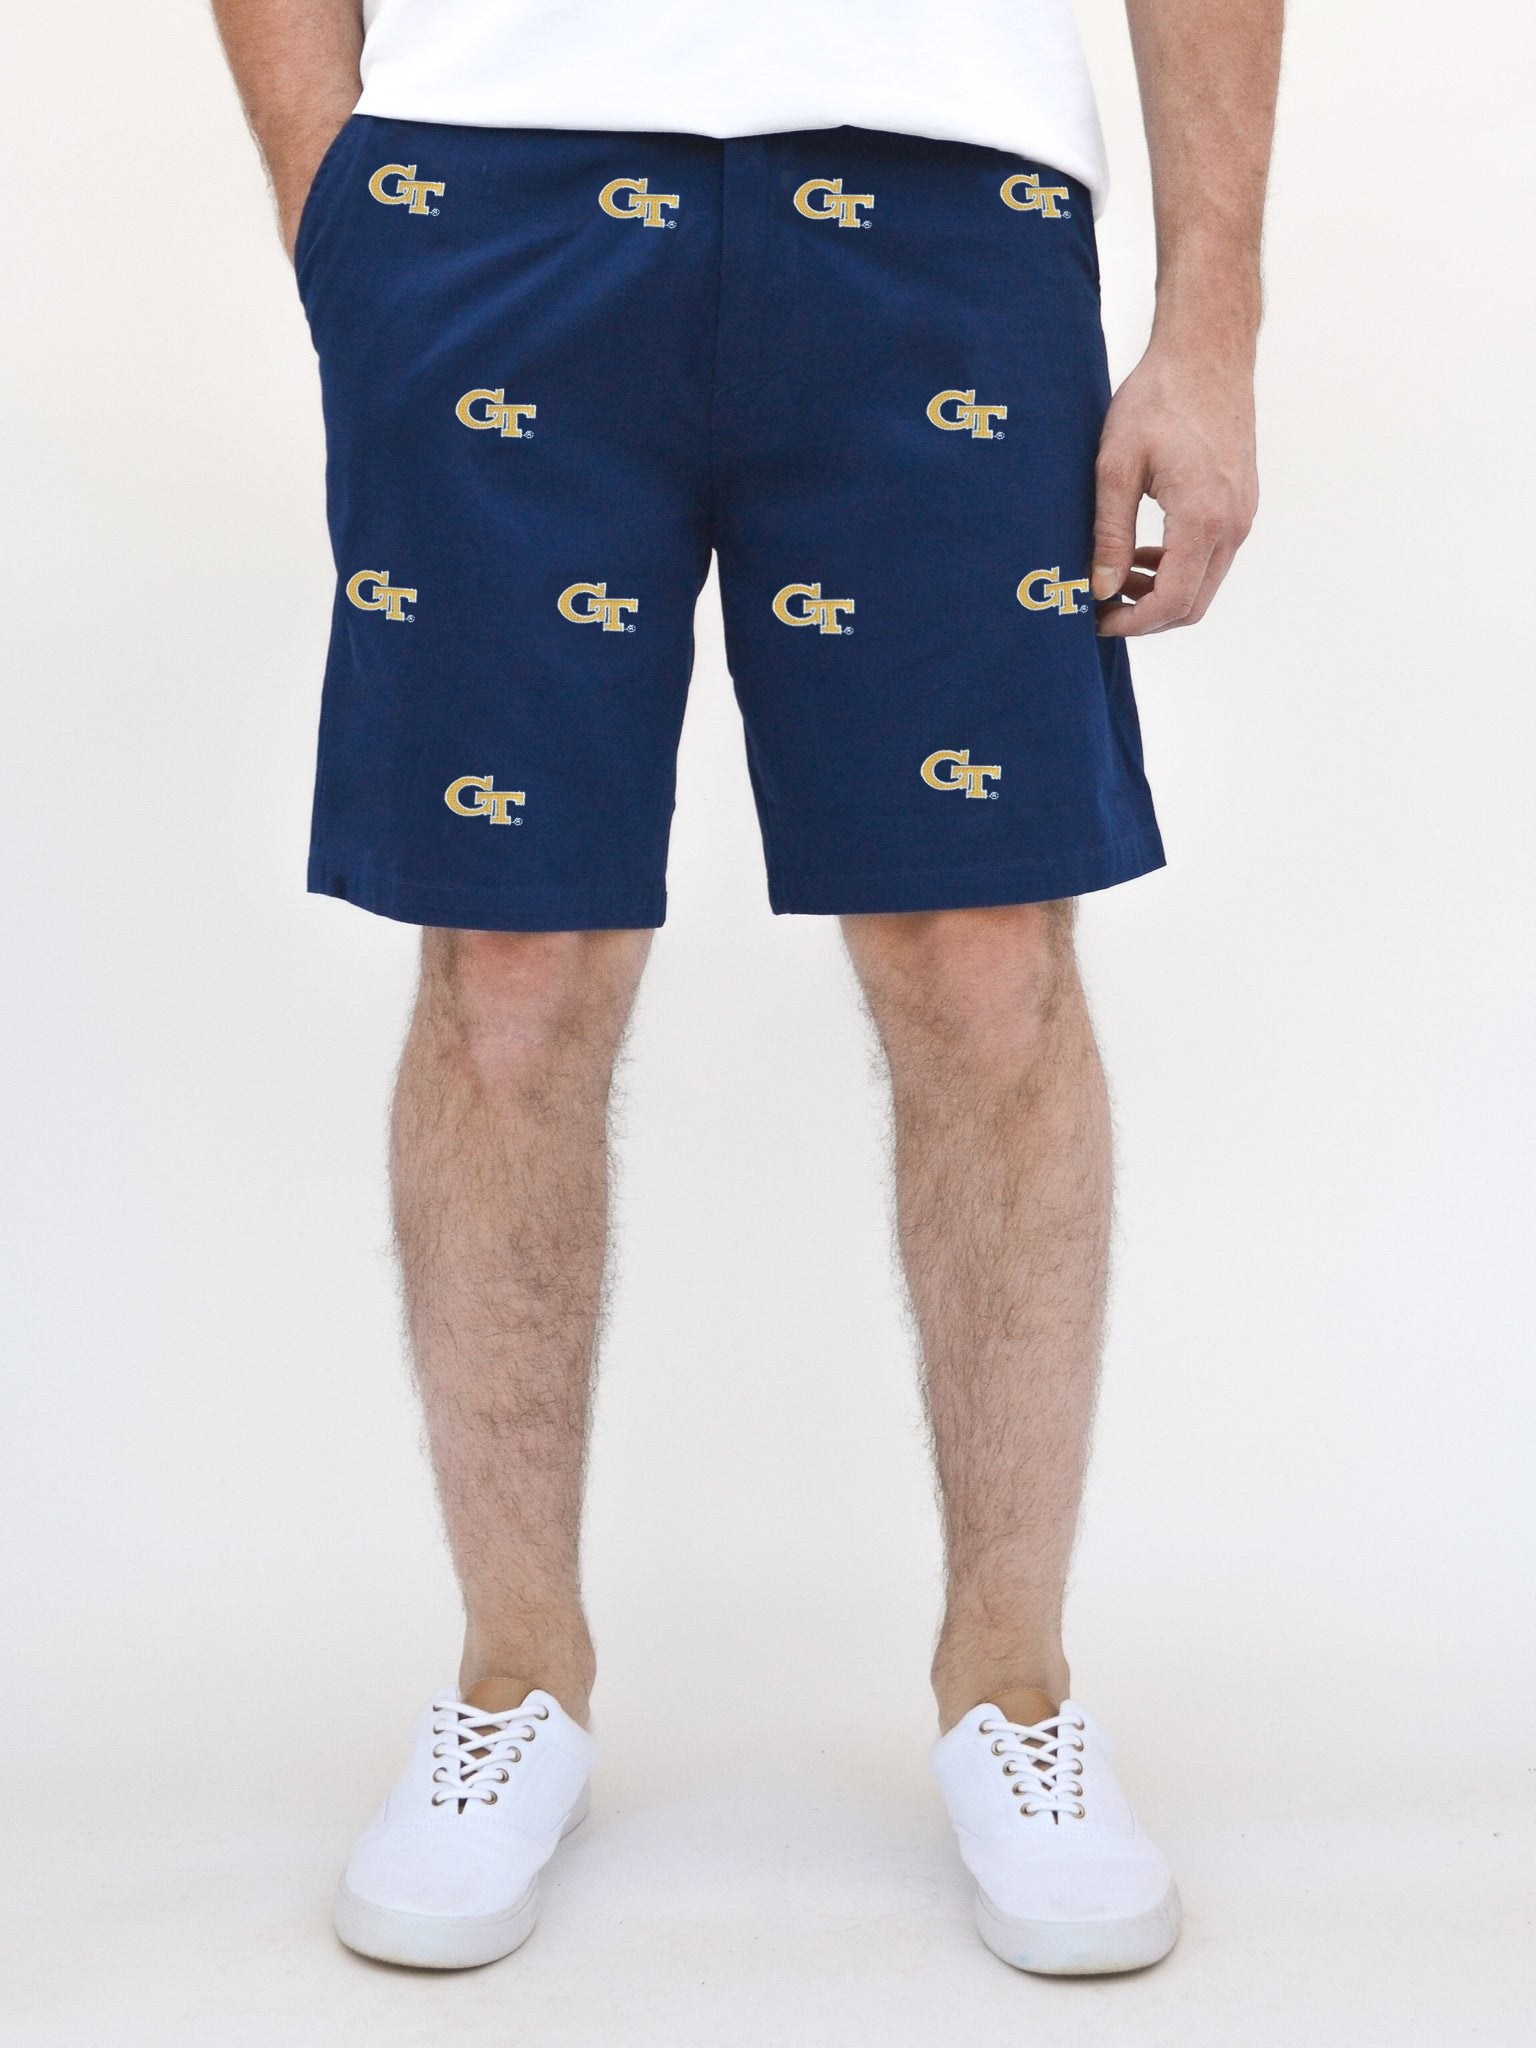 Georgia Tech Blue Short